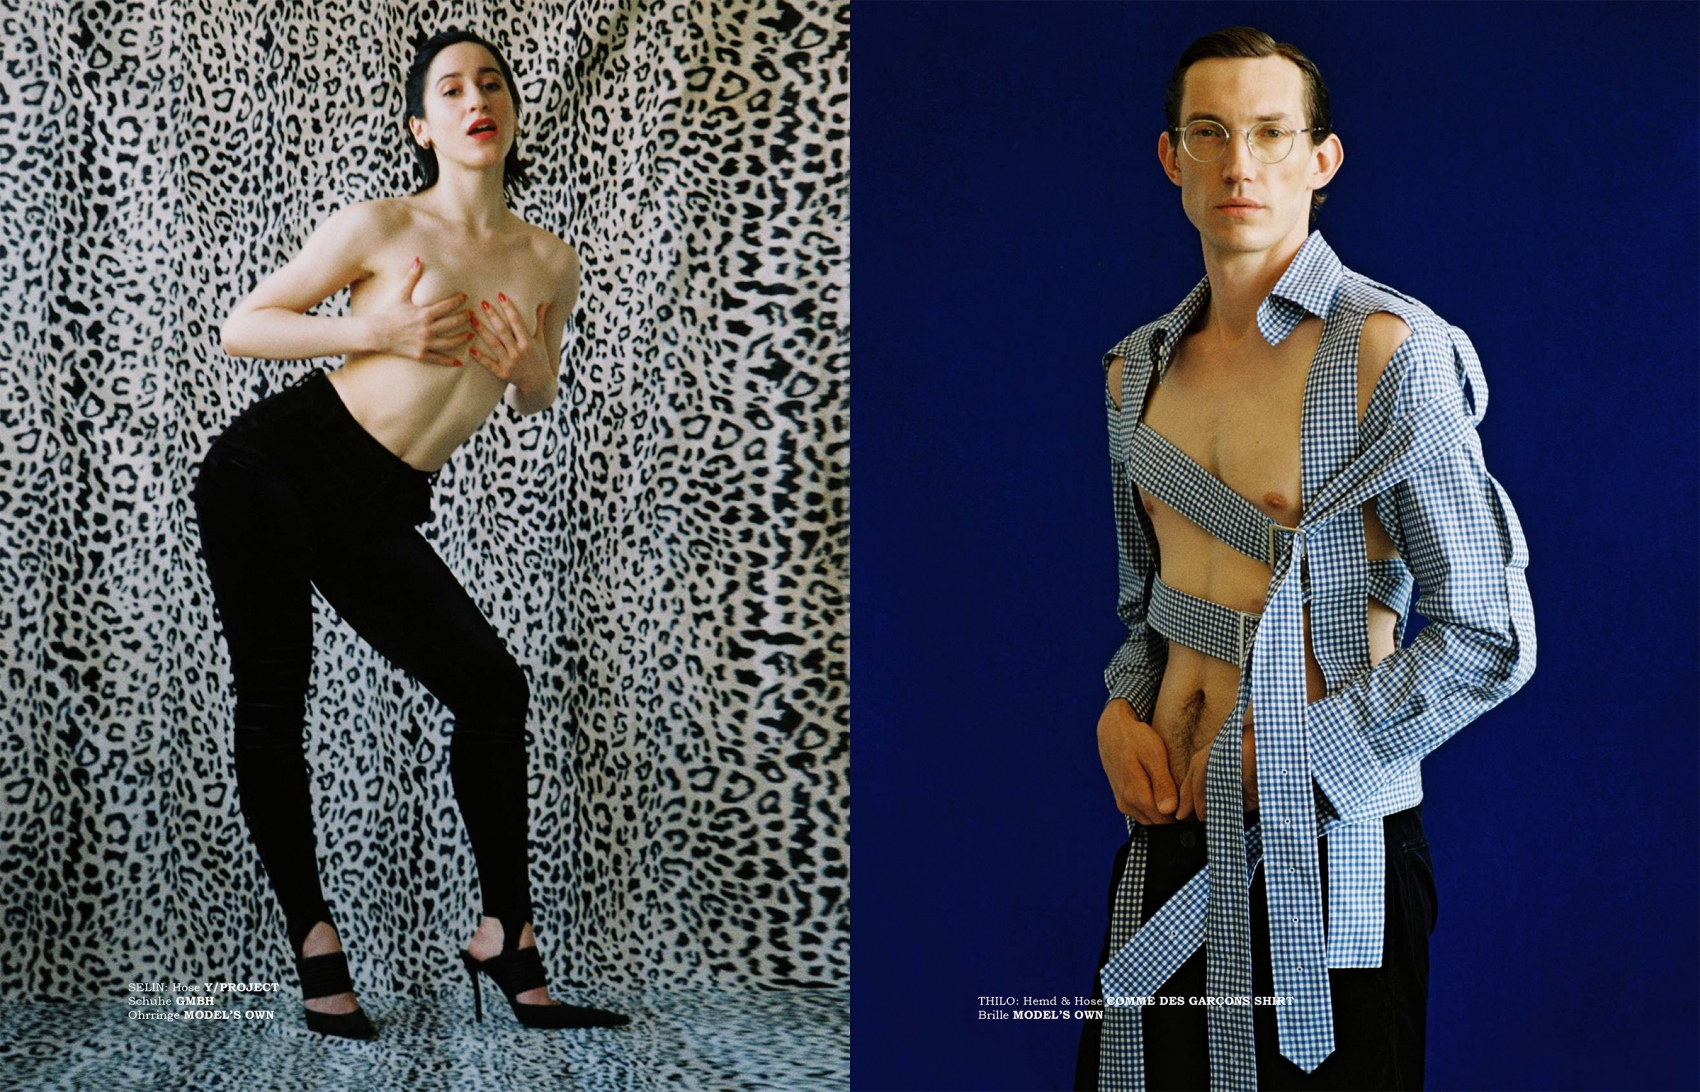 Christian Stemmler_Davit Giorgadze_Interview Magazine_4